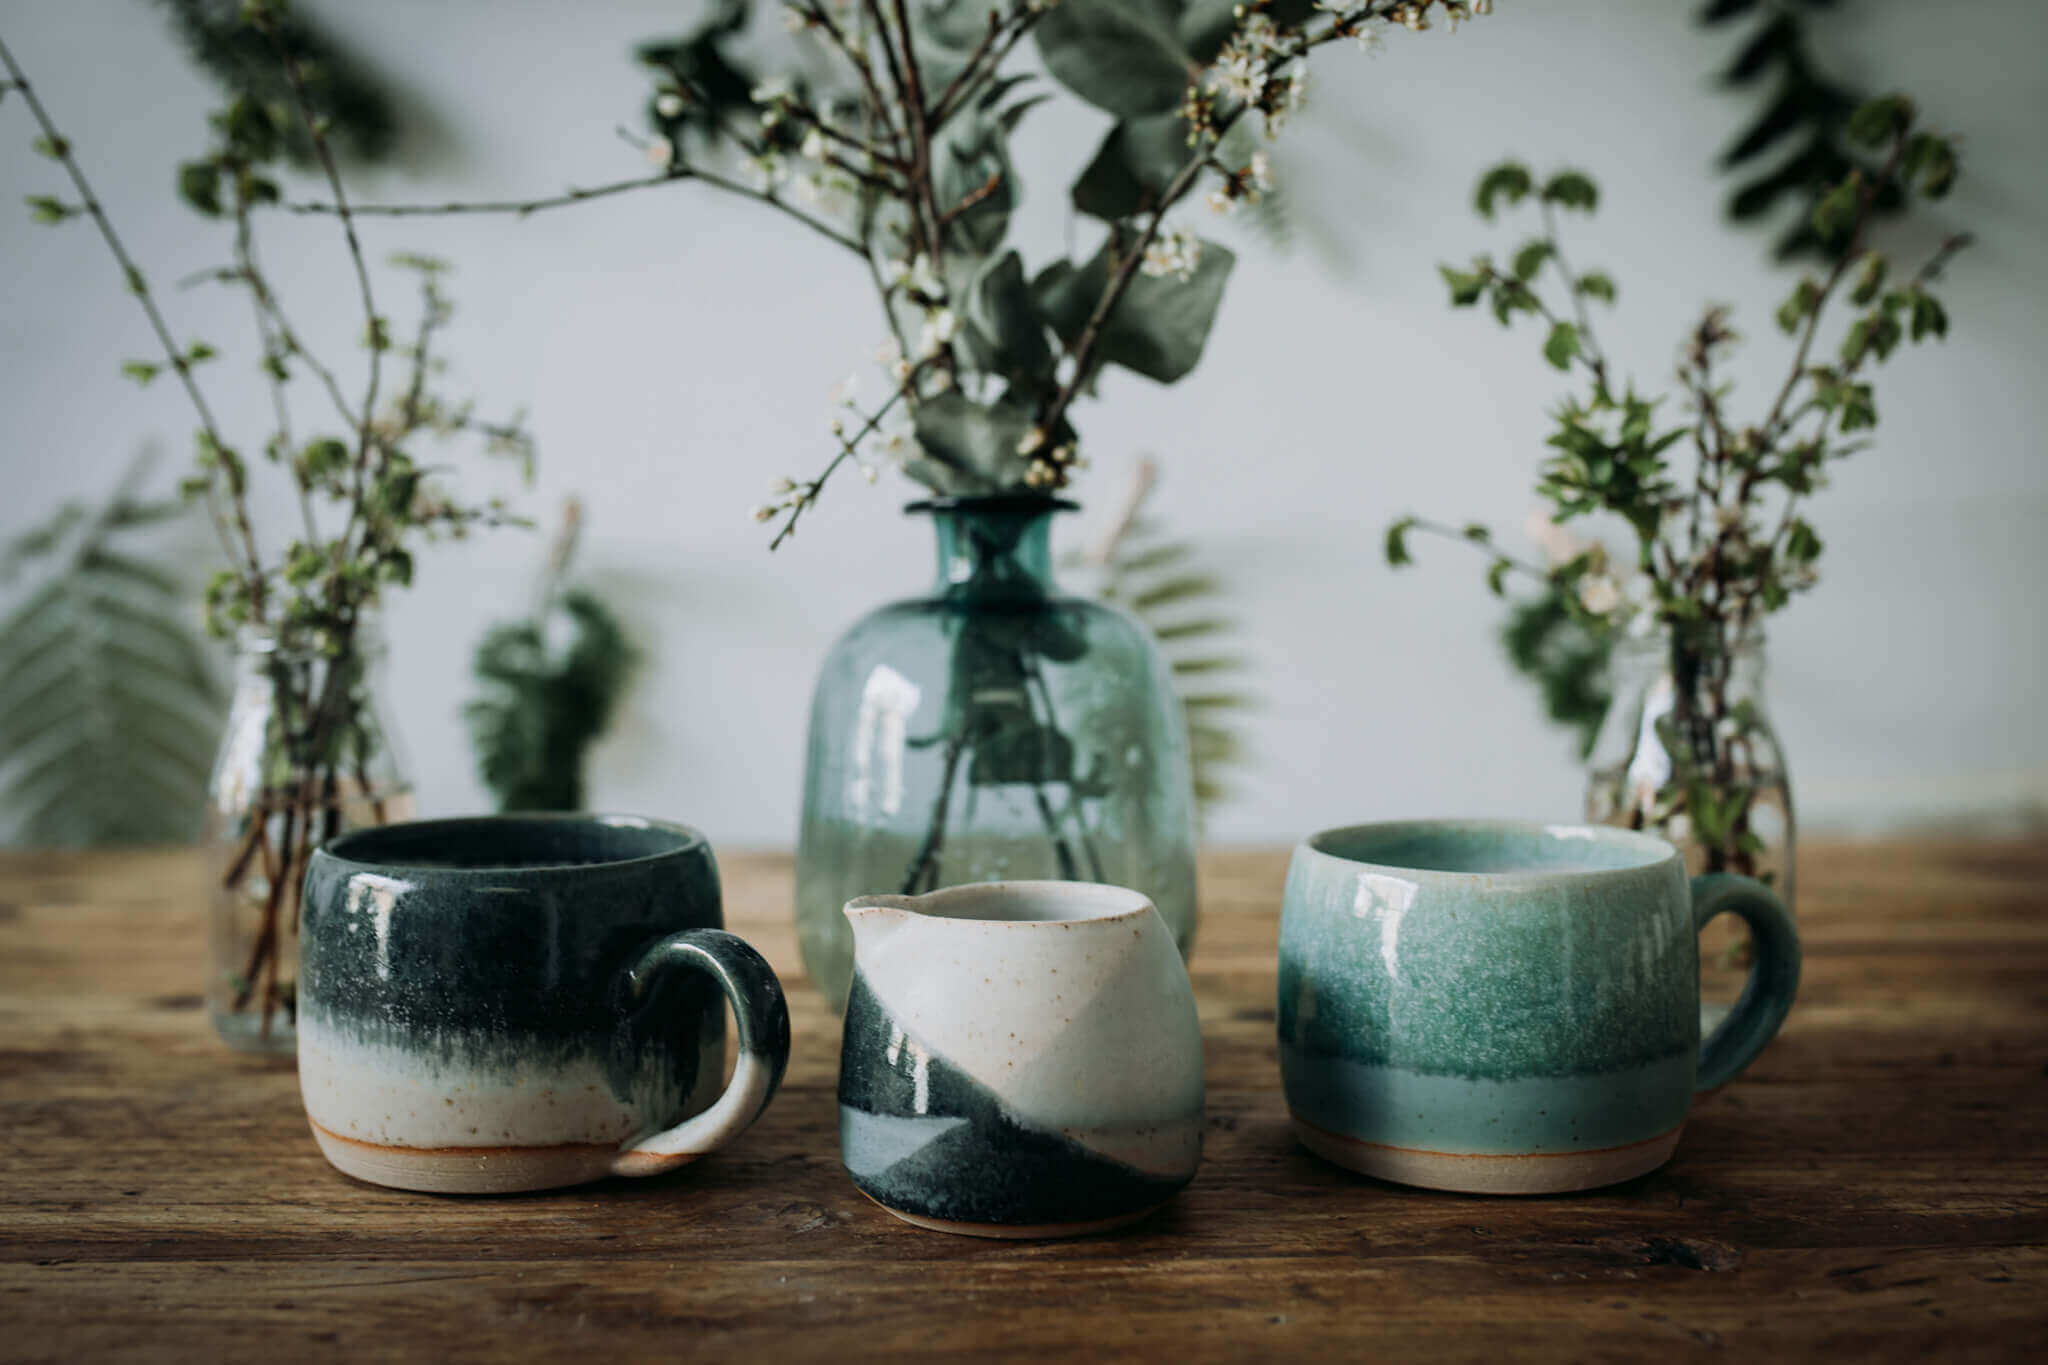 liz vidal hug mugs and new milk jug